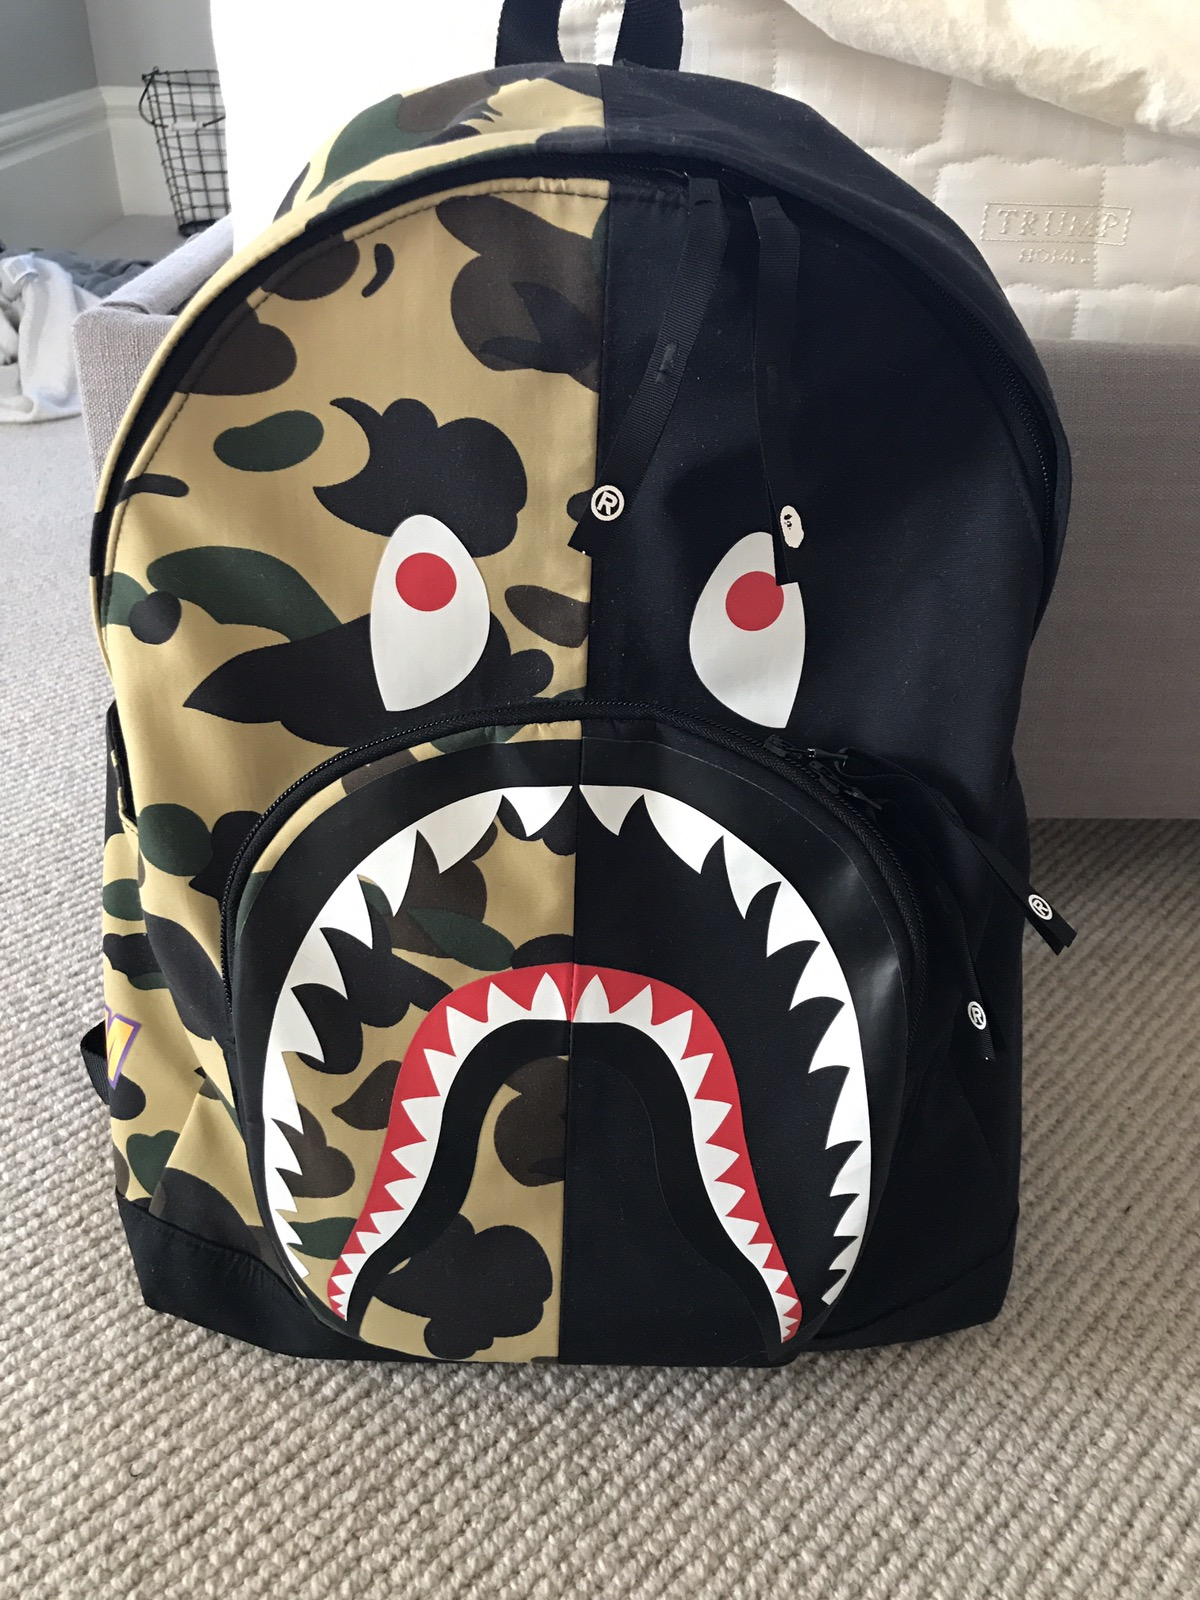 Bape Shark Backpack >> Bape Bape Shark Backpack Grailed